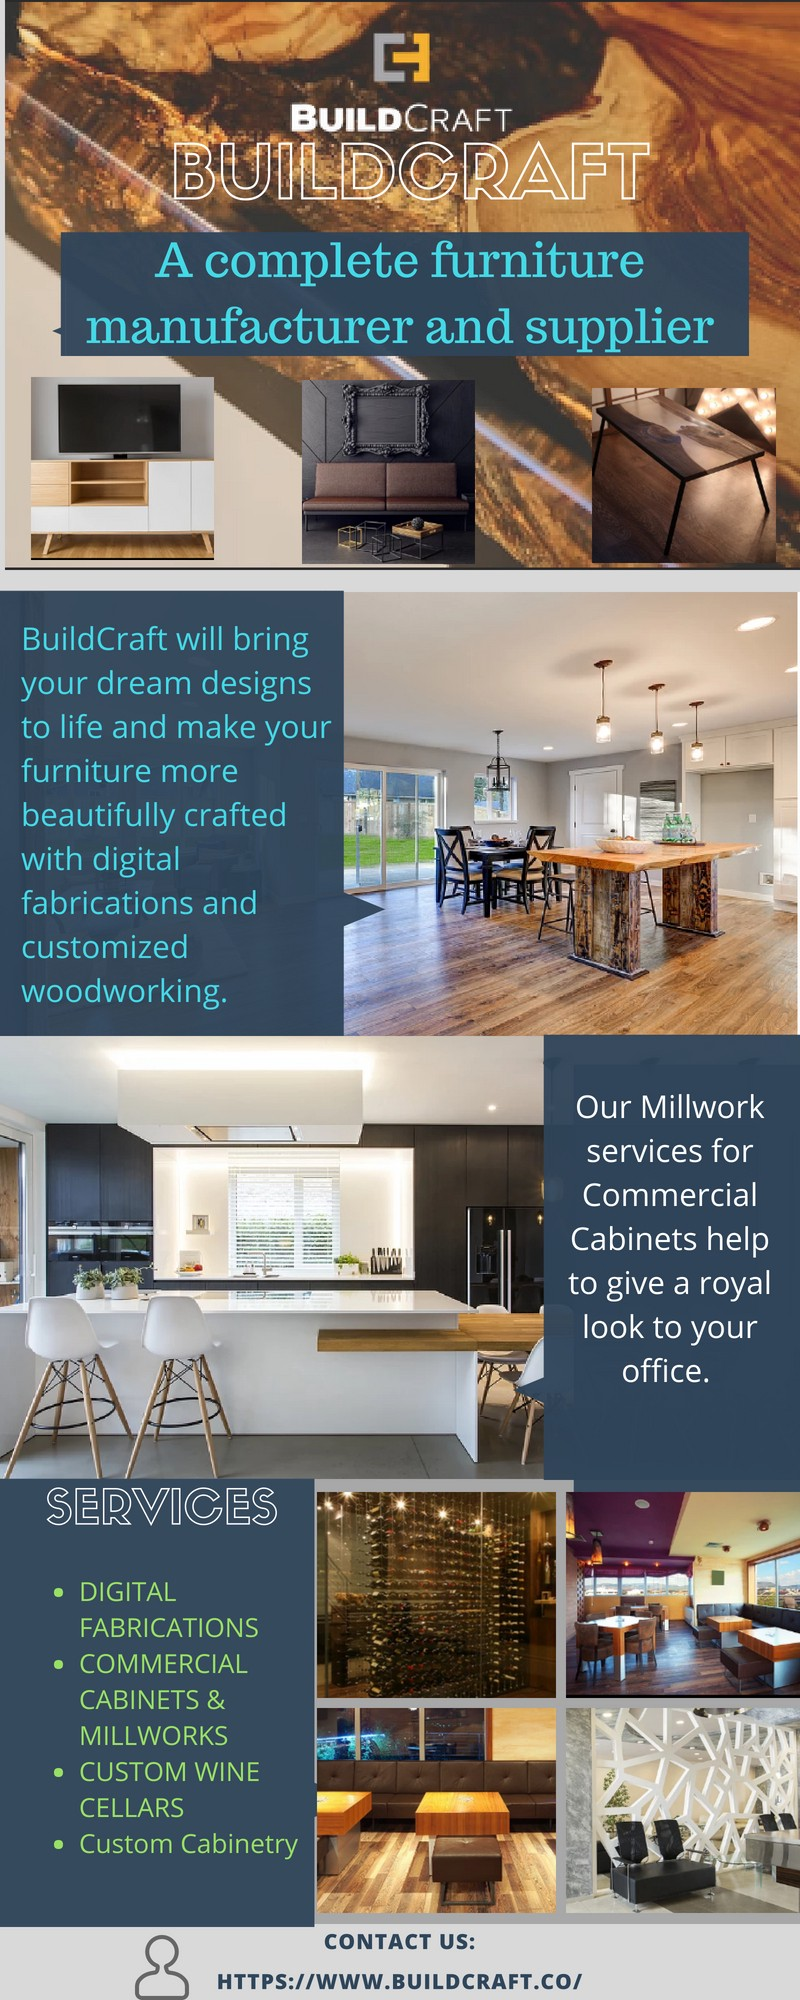 Buildcraft S Custom Cabinets Services In Charlotte Nc Can Help You To Remodel Your Home And Fully Customize Kitchen Bathroom